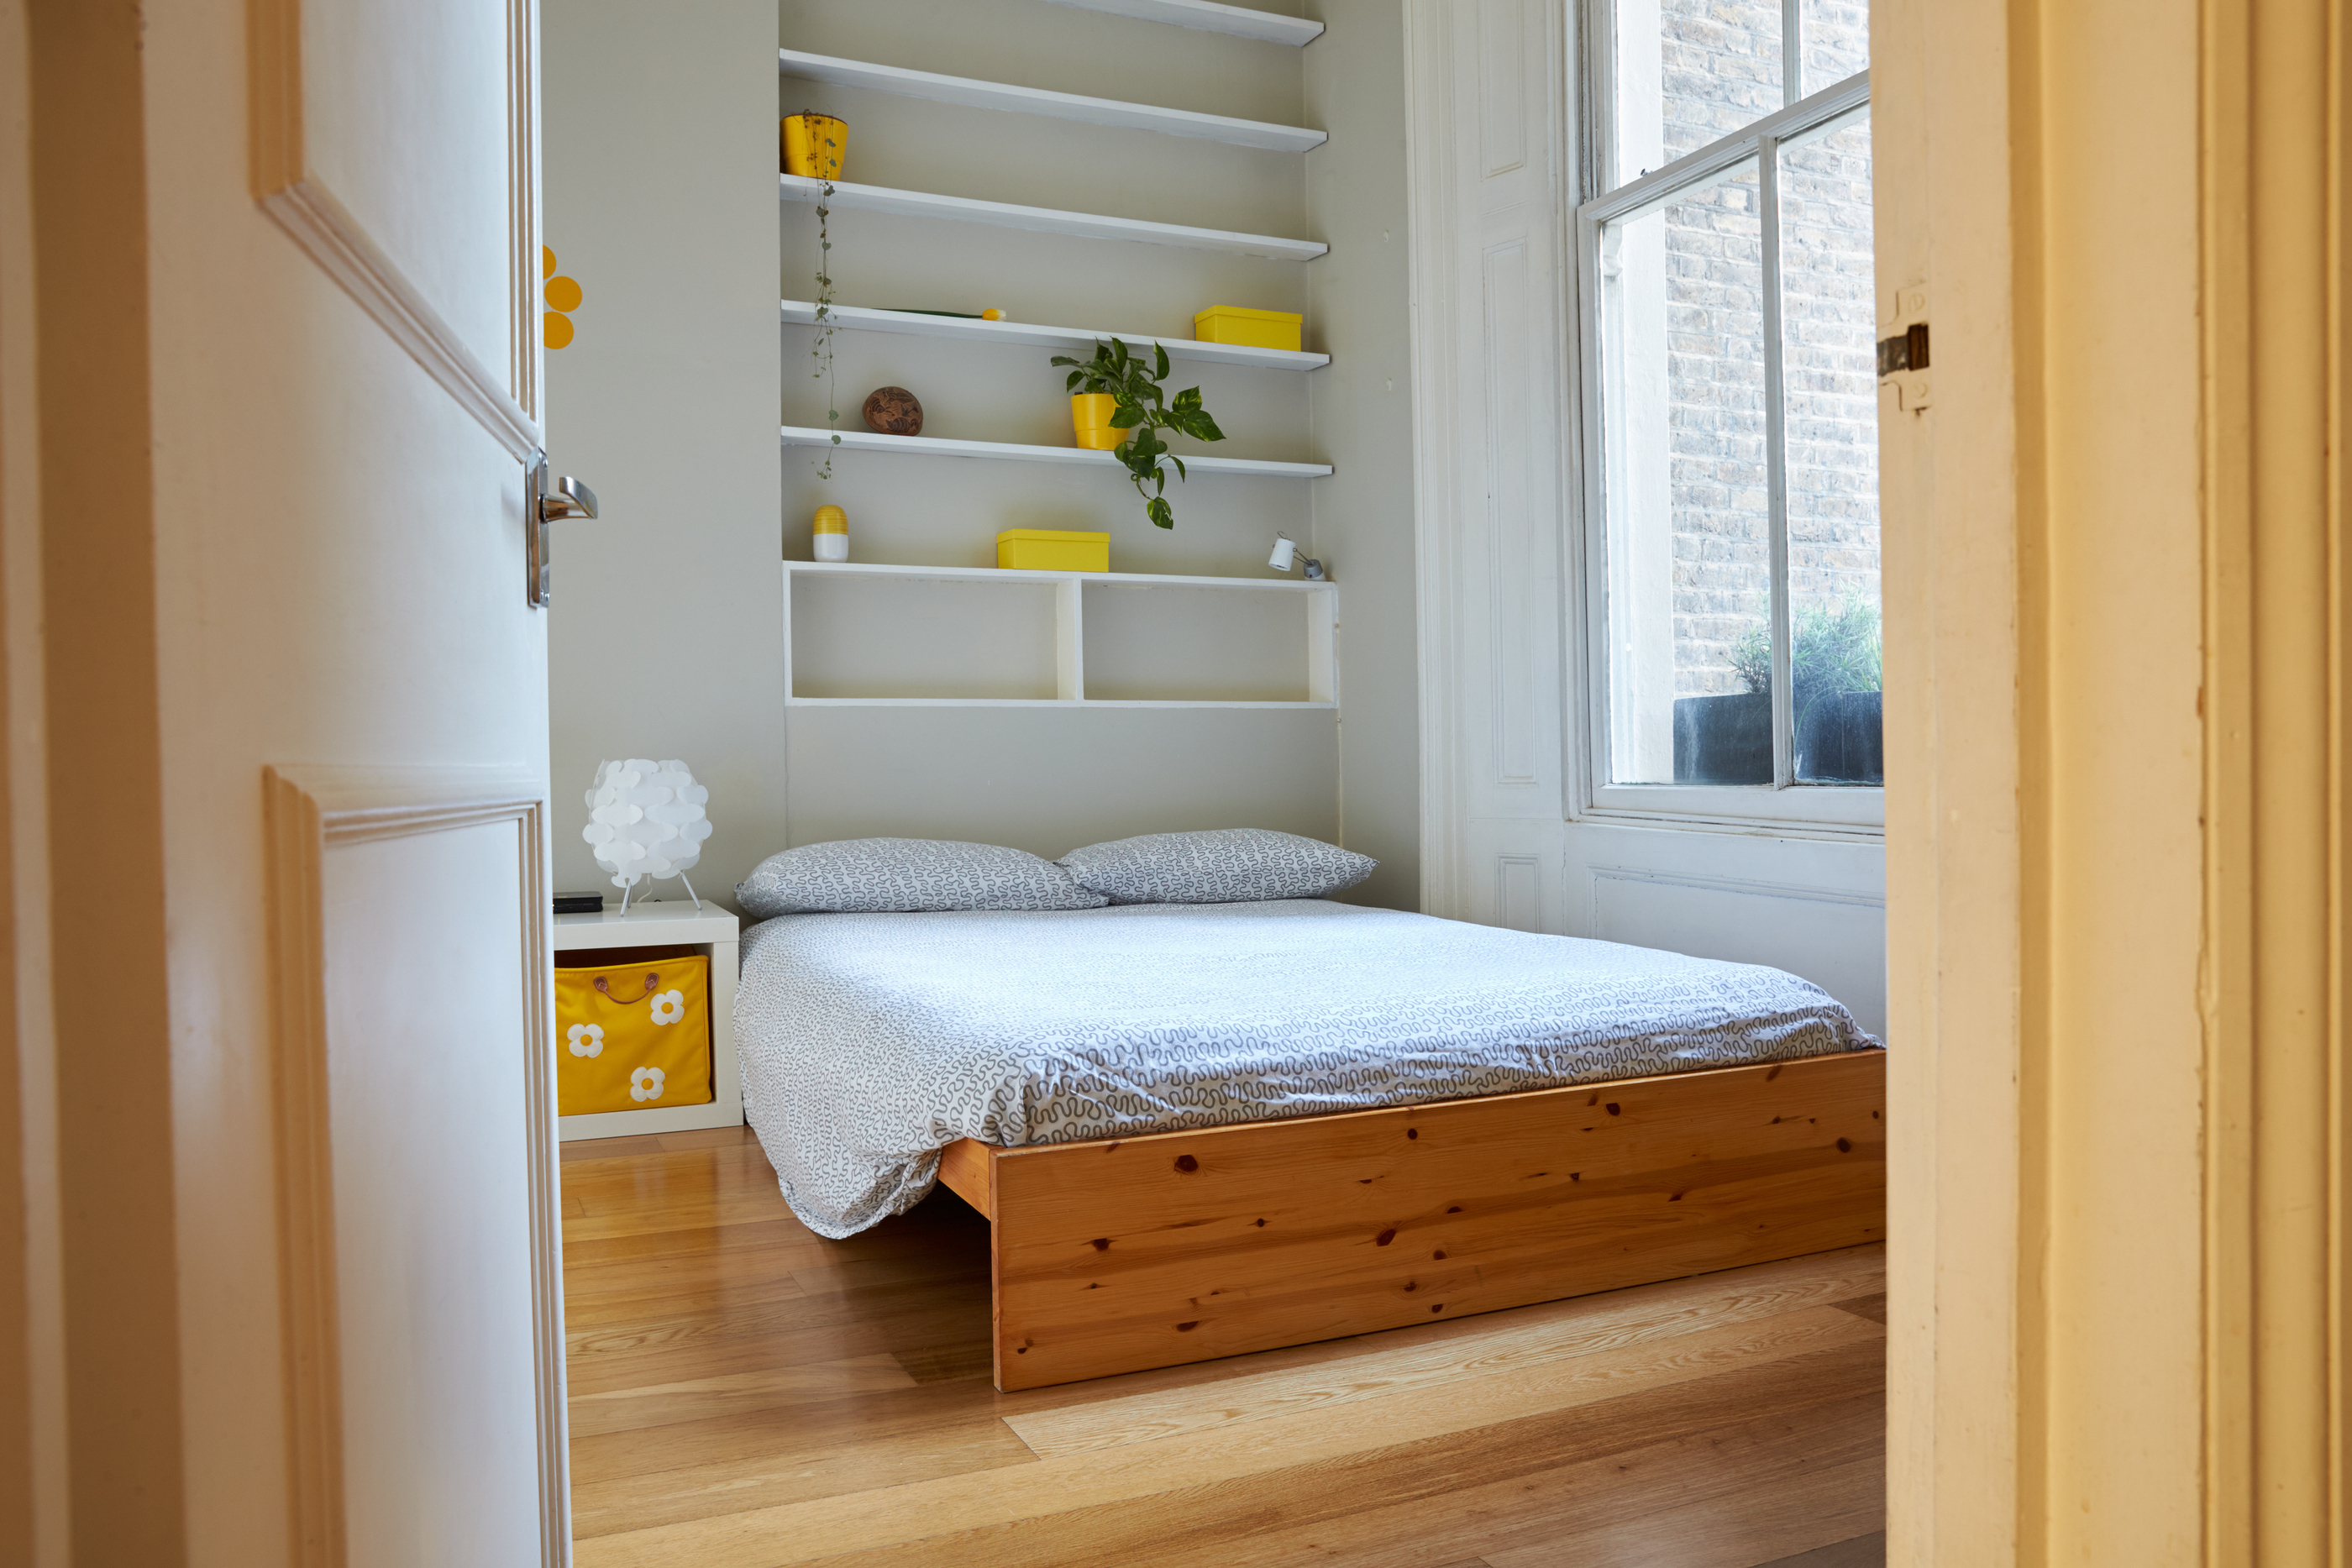 To Make The Most Of Your Bedroom Storage, You Should Consider Installing As  Many Shelves As Possible. There Are Plenty Of Different Ways That You Can  ...